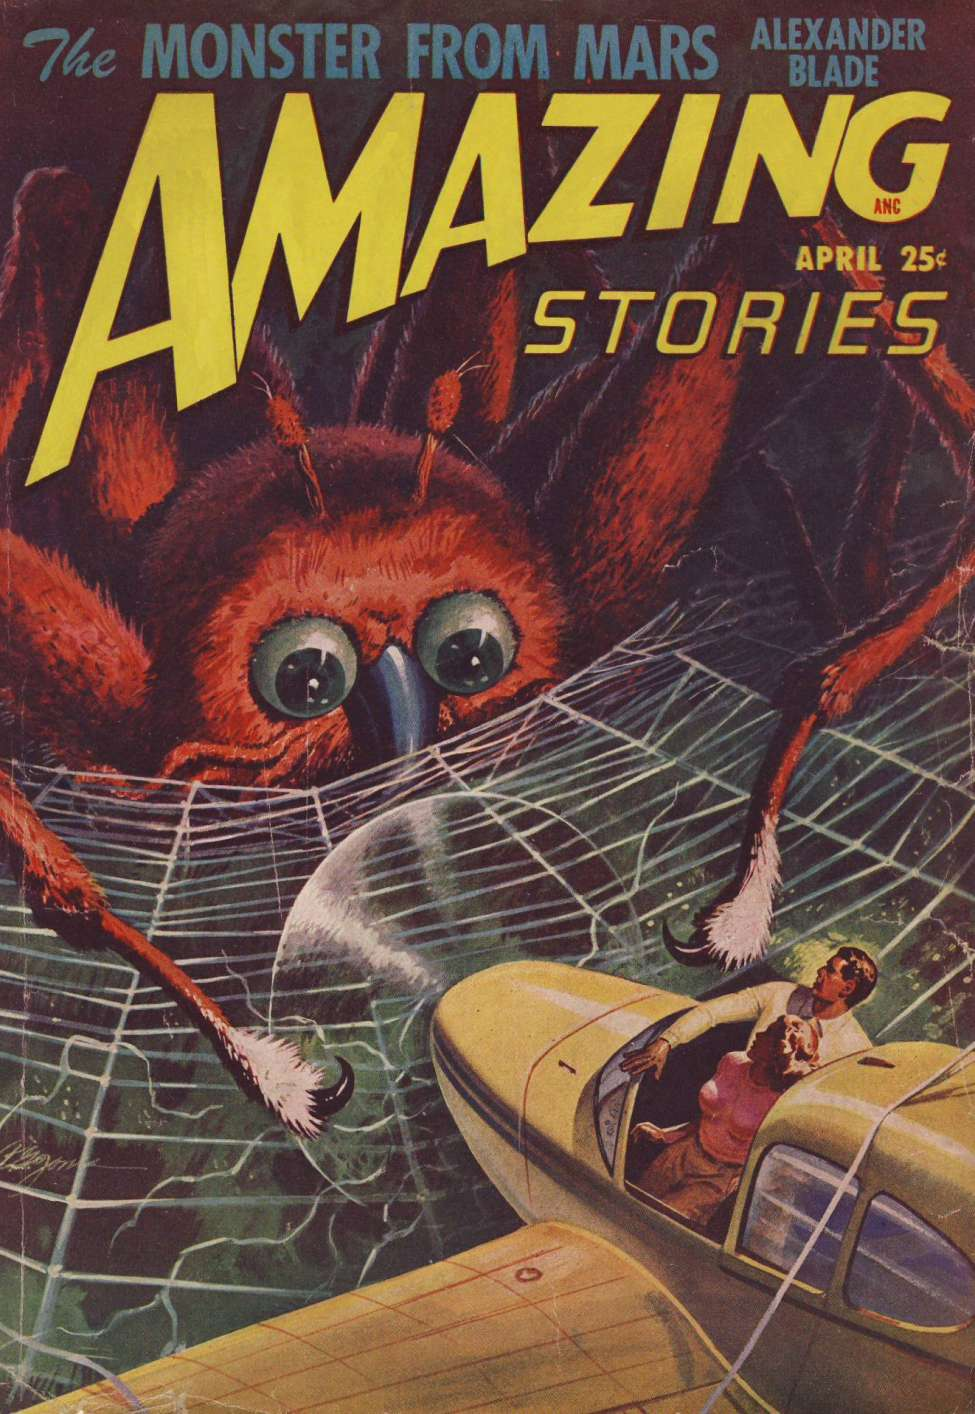 Comic Book Cover For Amazing Stories v22 04 - The Monster from Mars - Alexander Blade